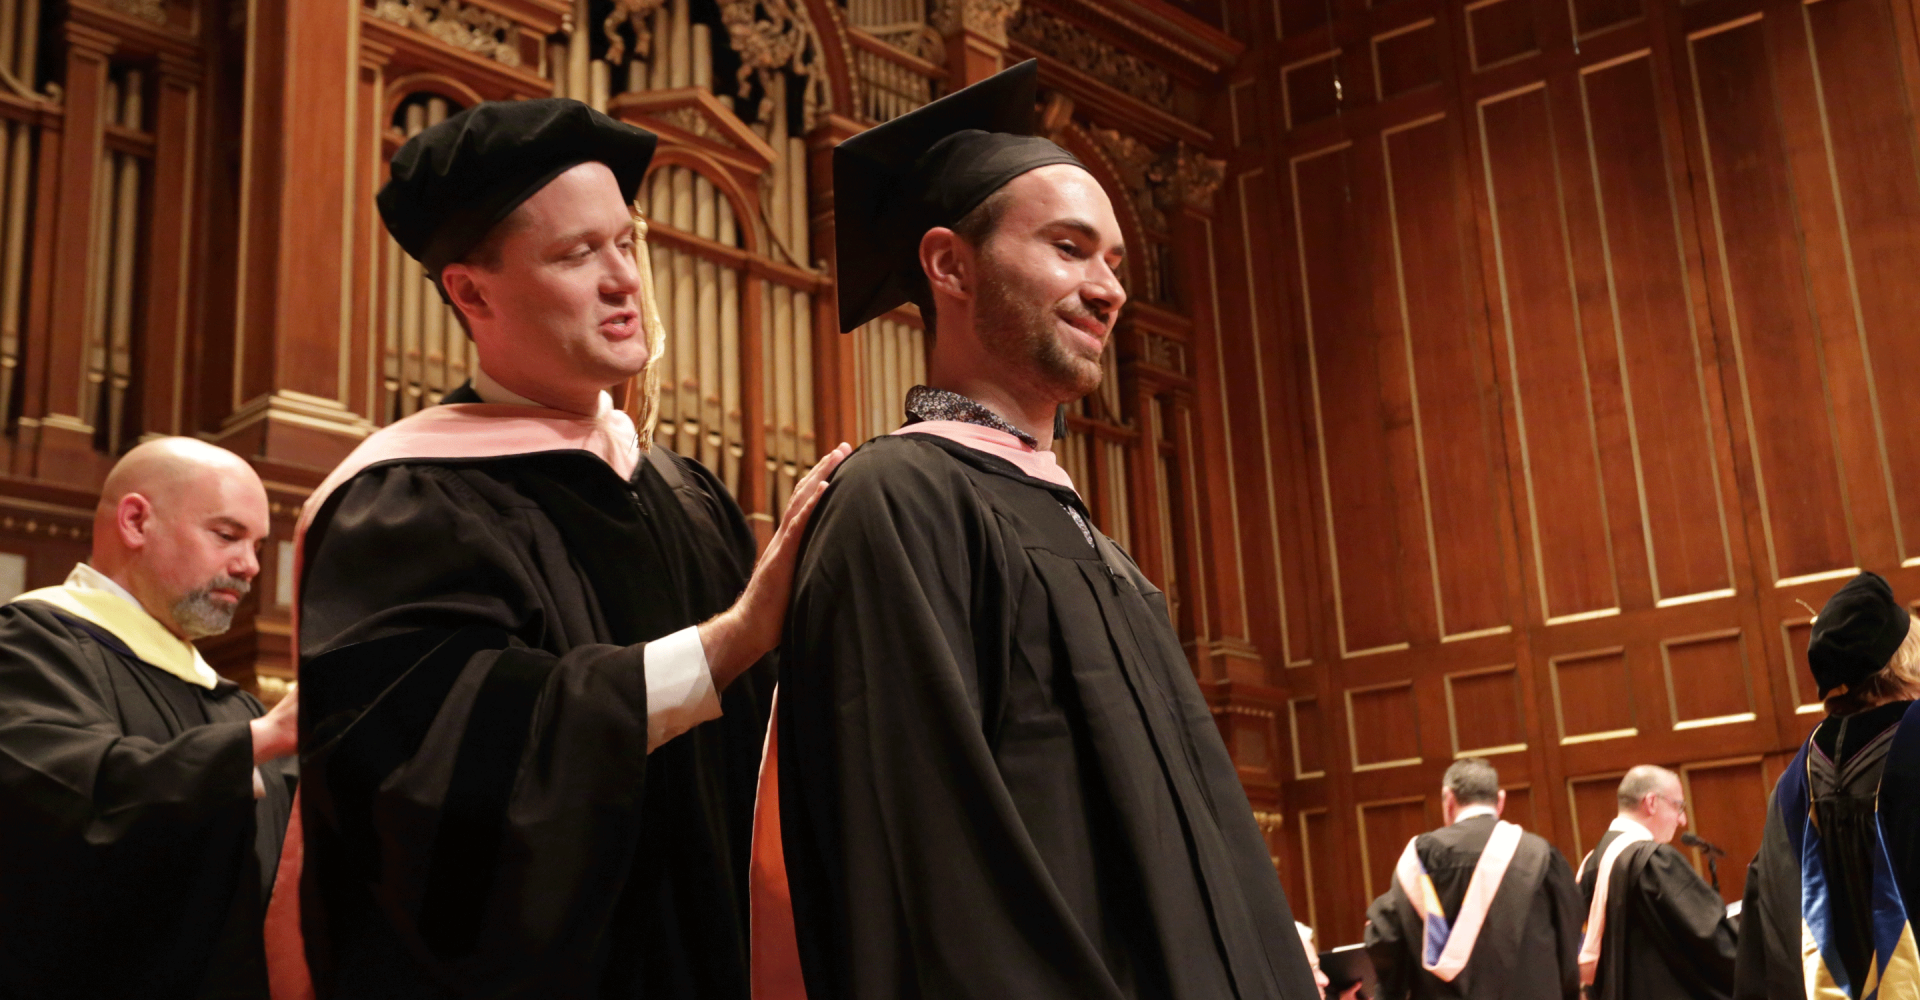 Alex Powell awards a master's hood to a graduate on the Jordan Hall stage